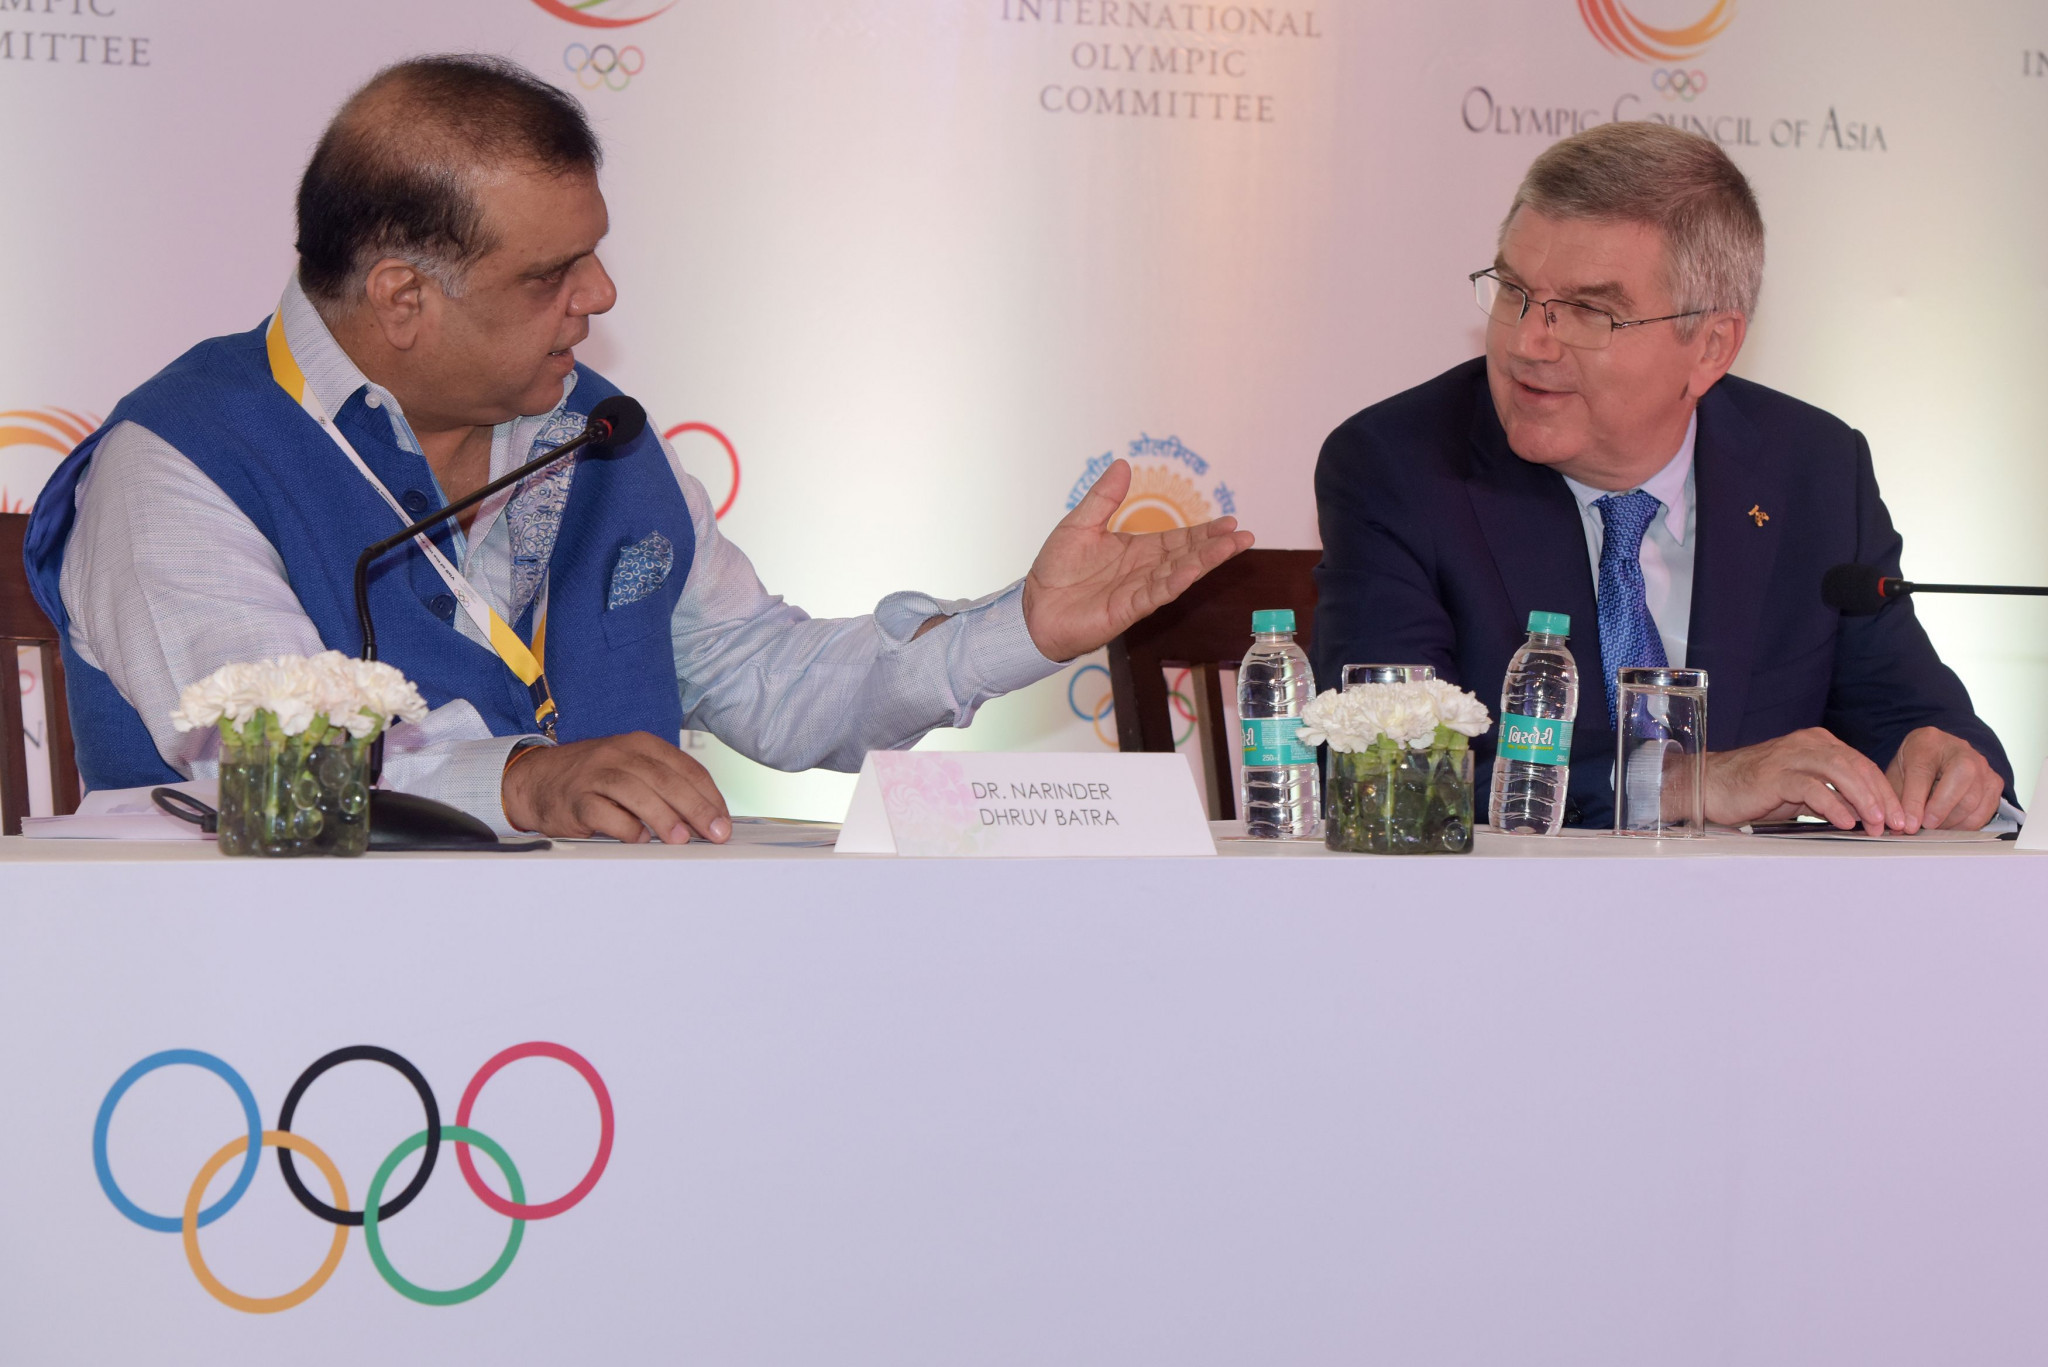 India rule out Birmingham 2022 boycott over shooting row as Bach refuses to get involved